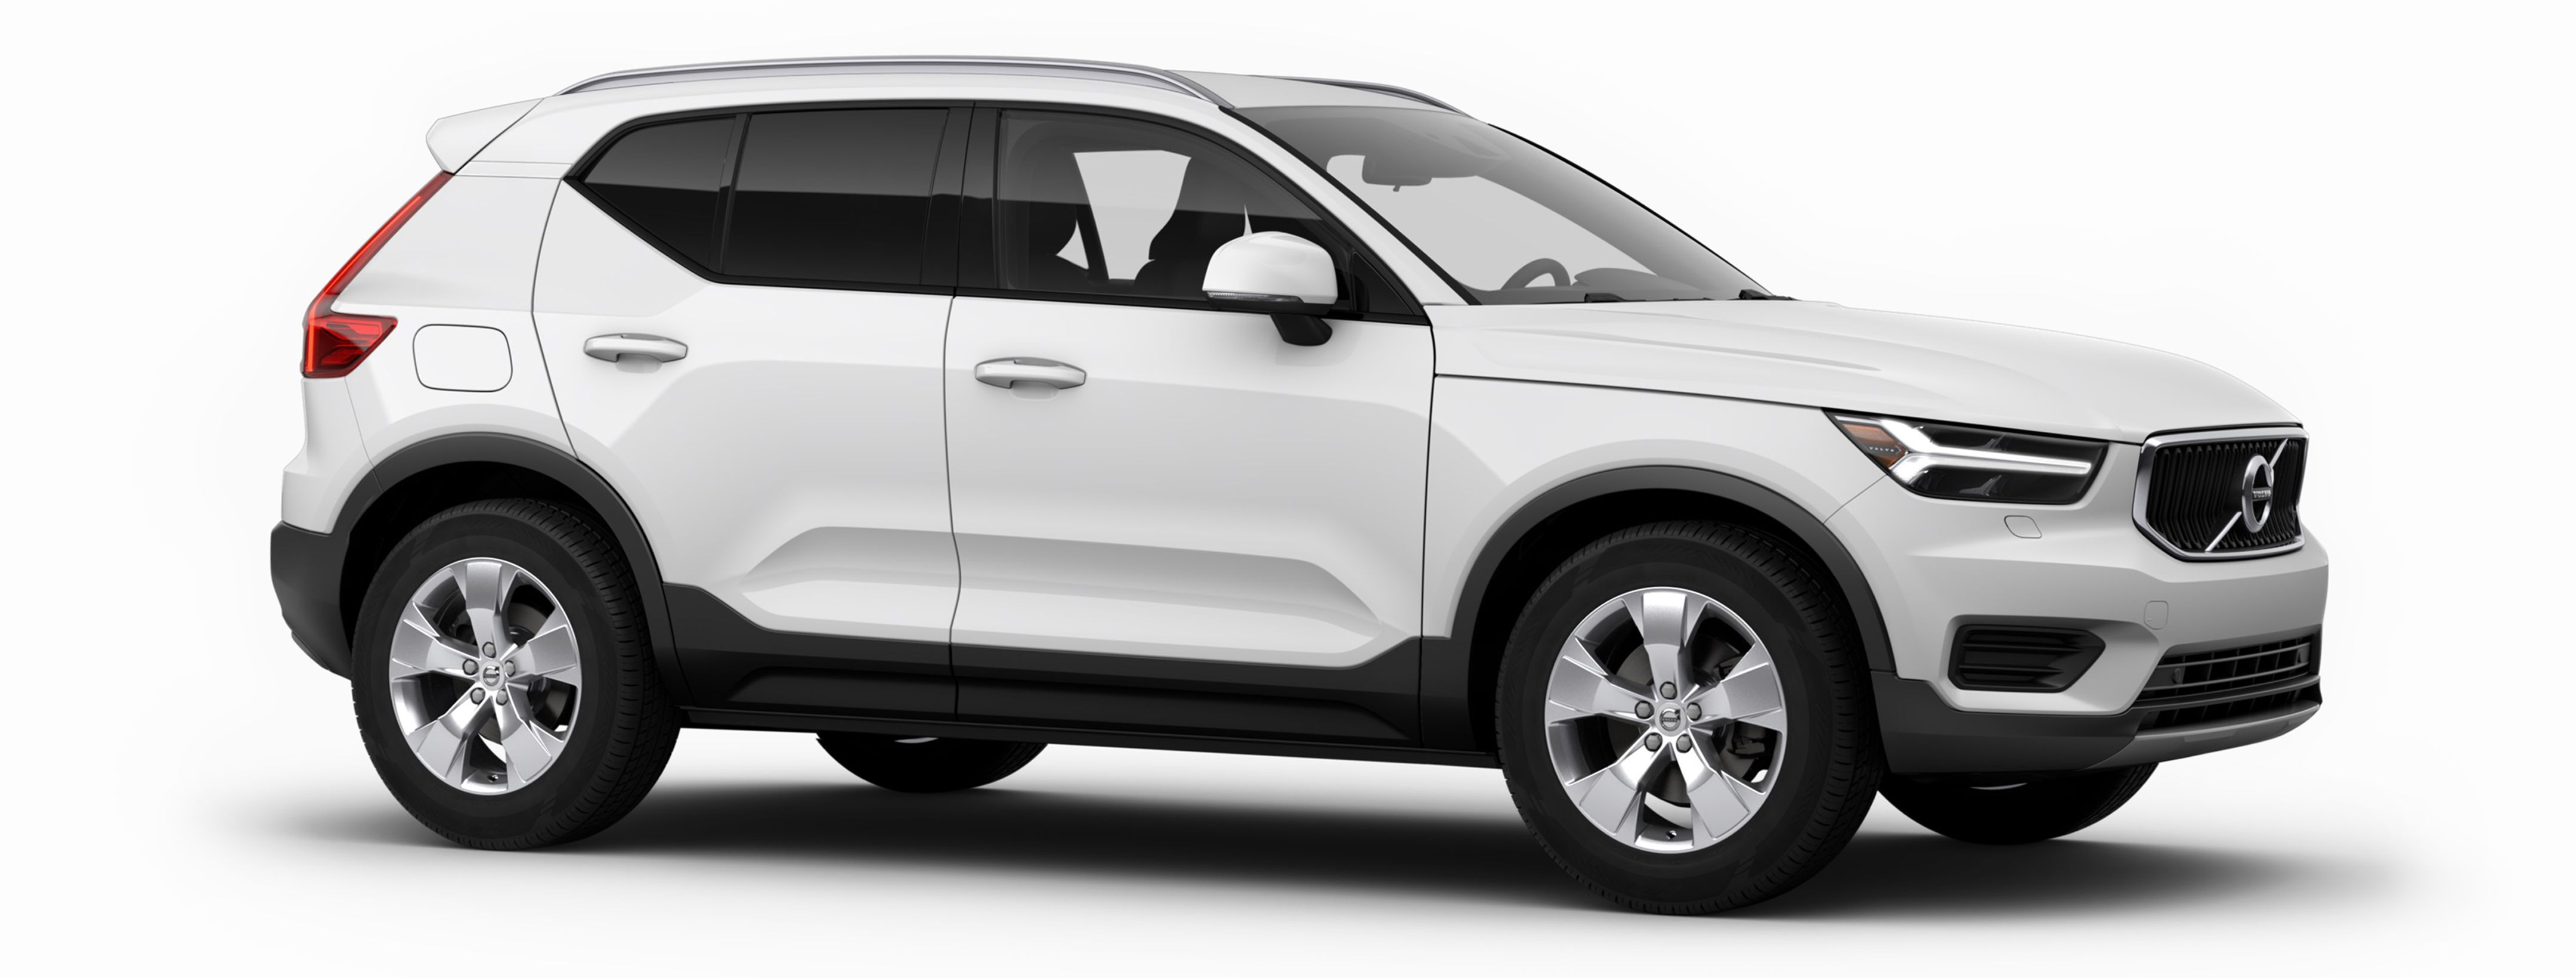 Volvo Models | 2019 Volvo SUV & Car Models, Prices in Cleveland, Ohio